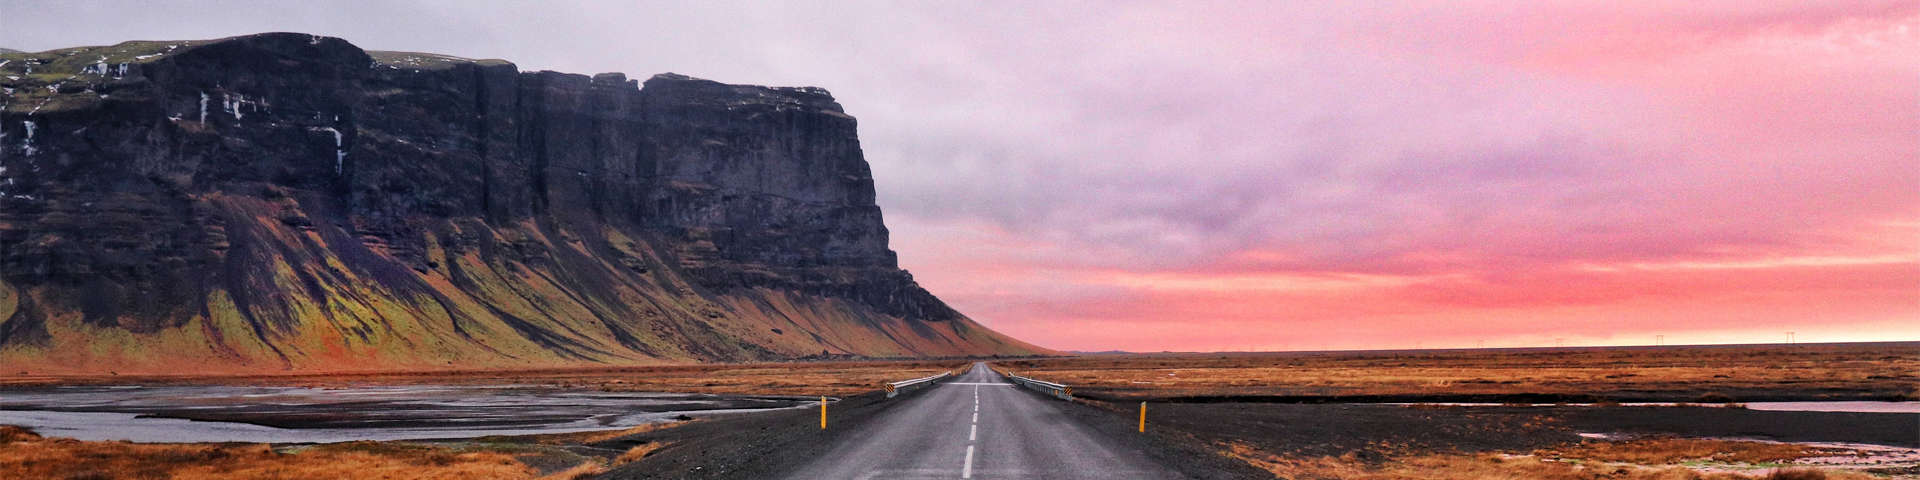 Lómagnúpur, a large mountain overlooking the road ahead during sunset.